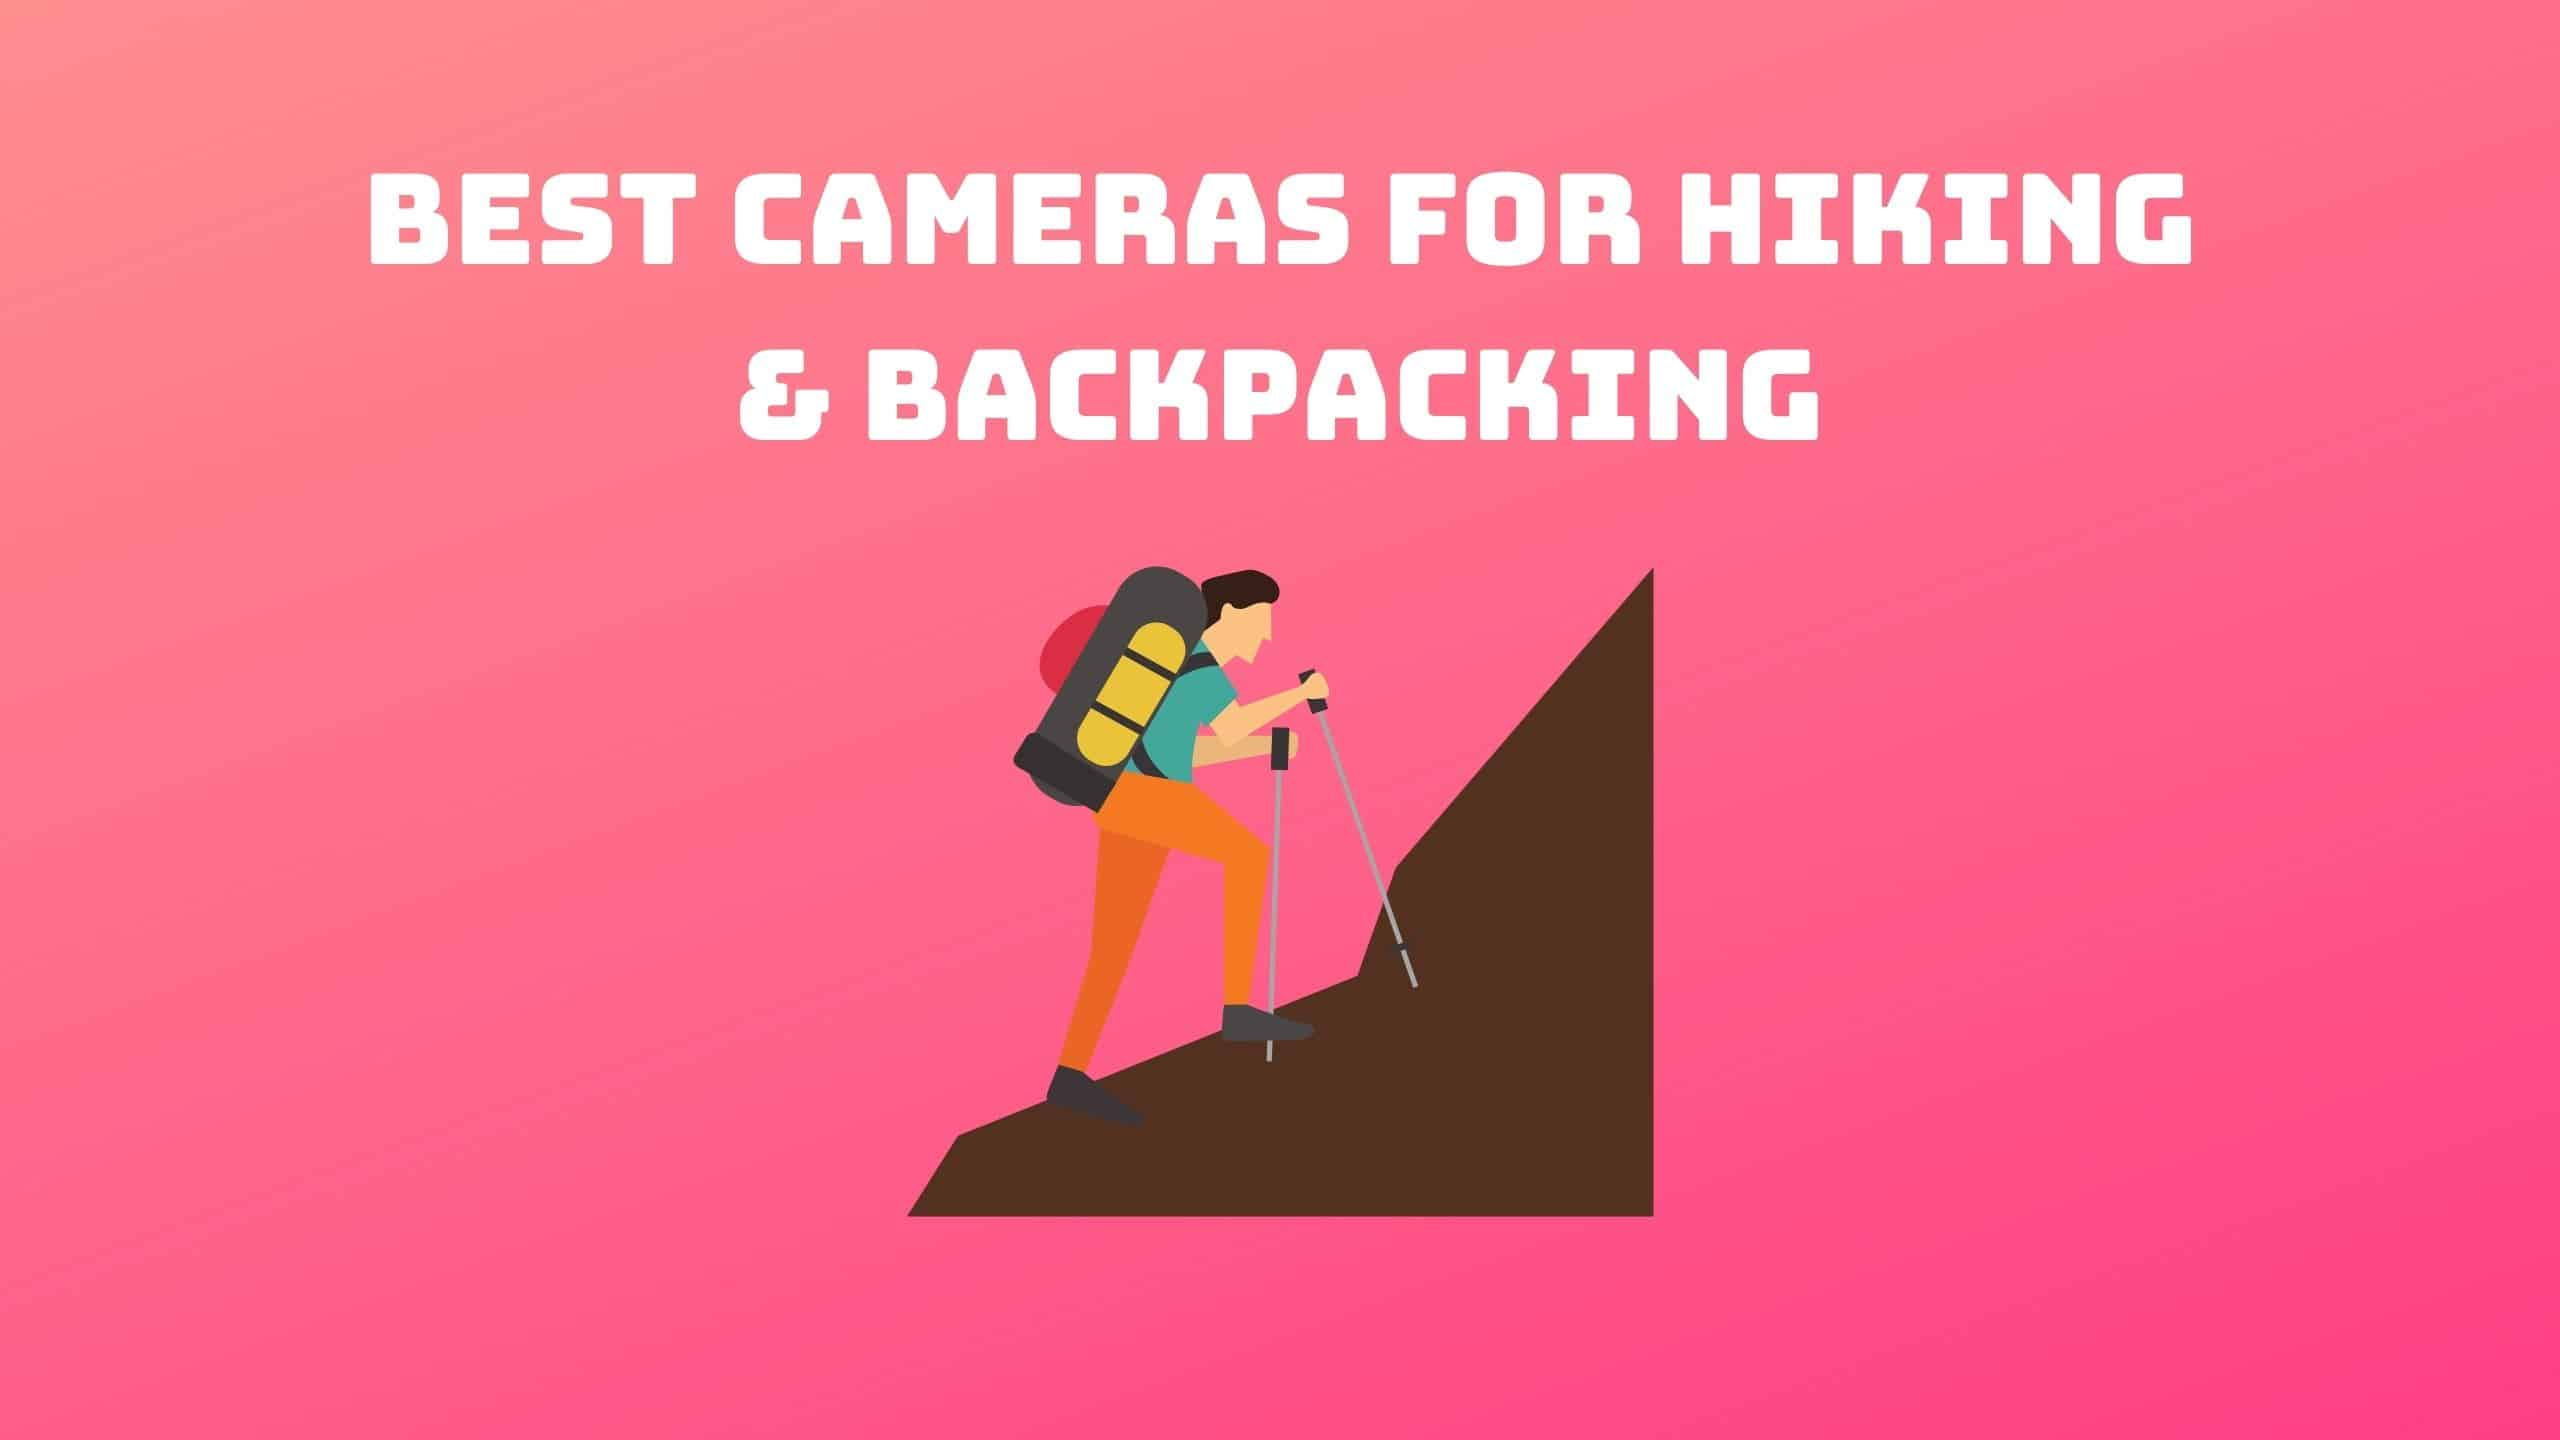 Best Cameras for Hiking & Backpacking